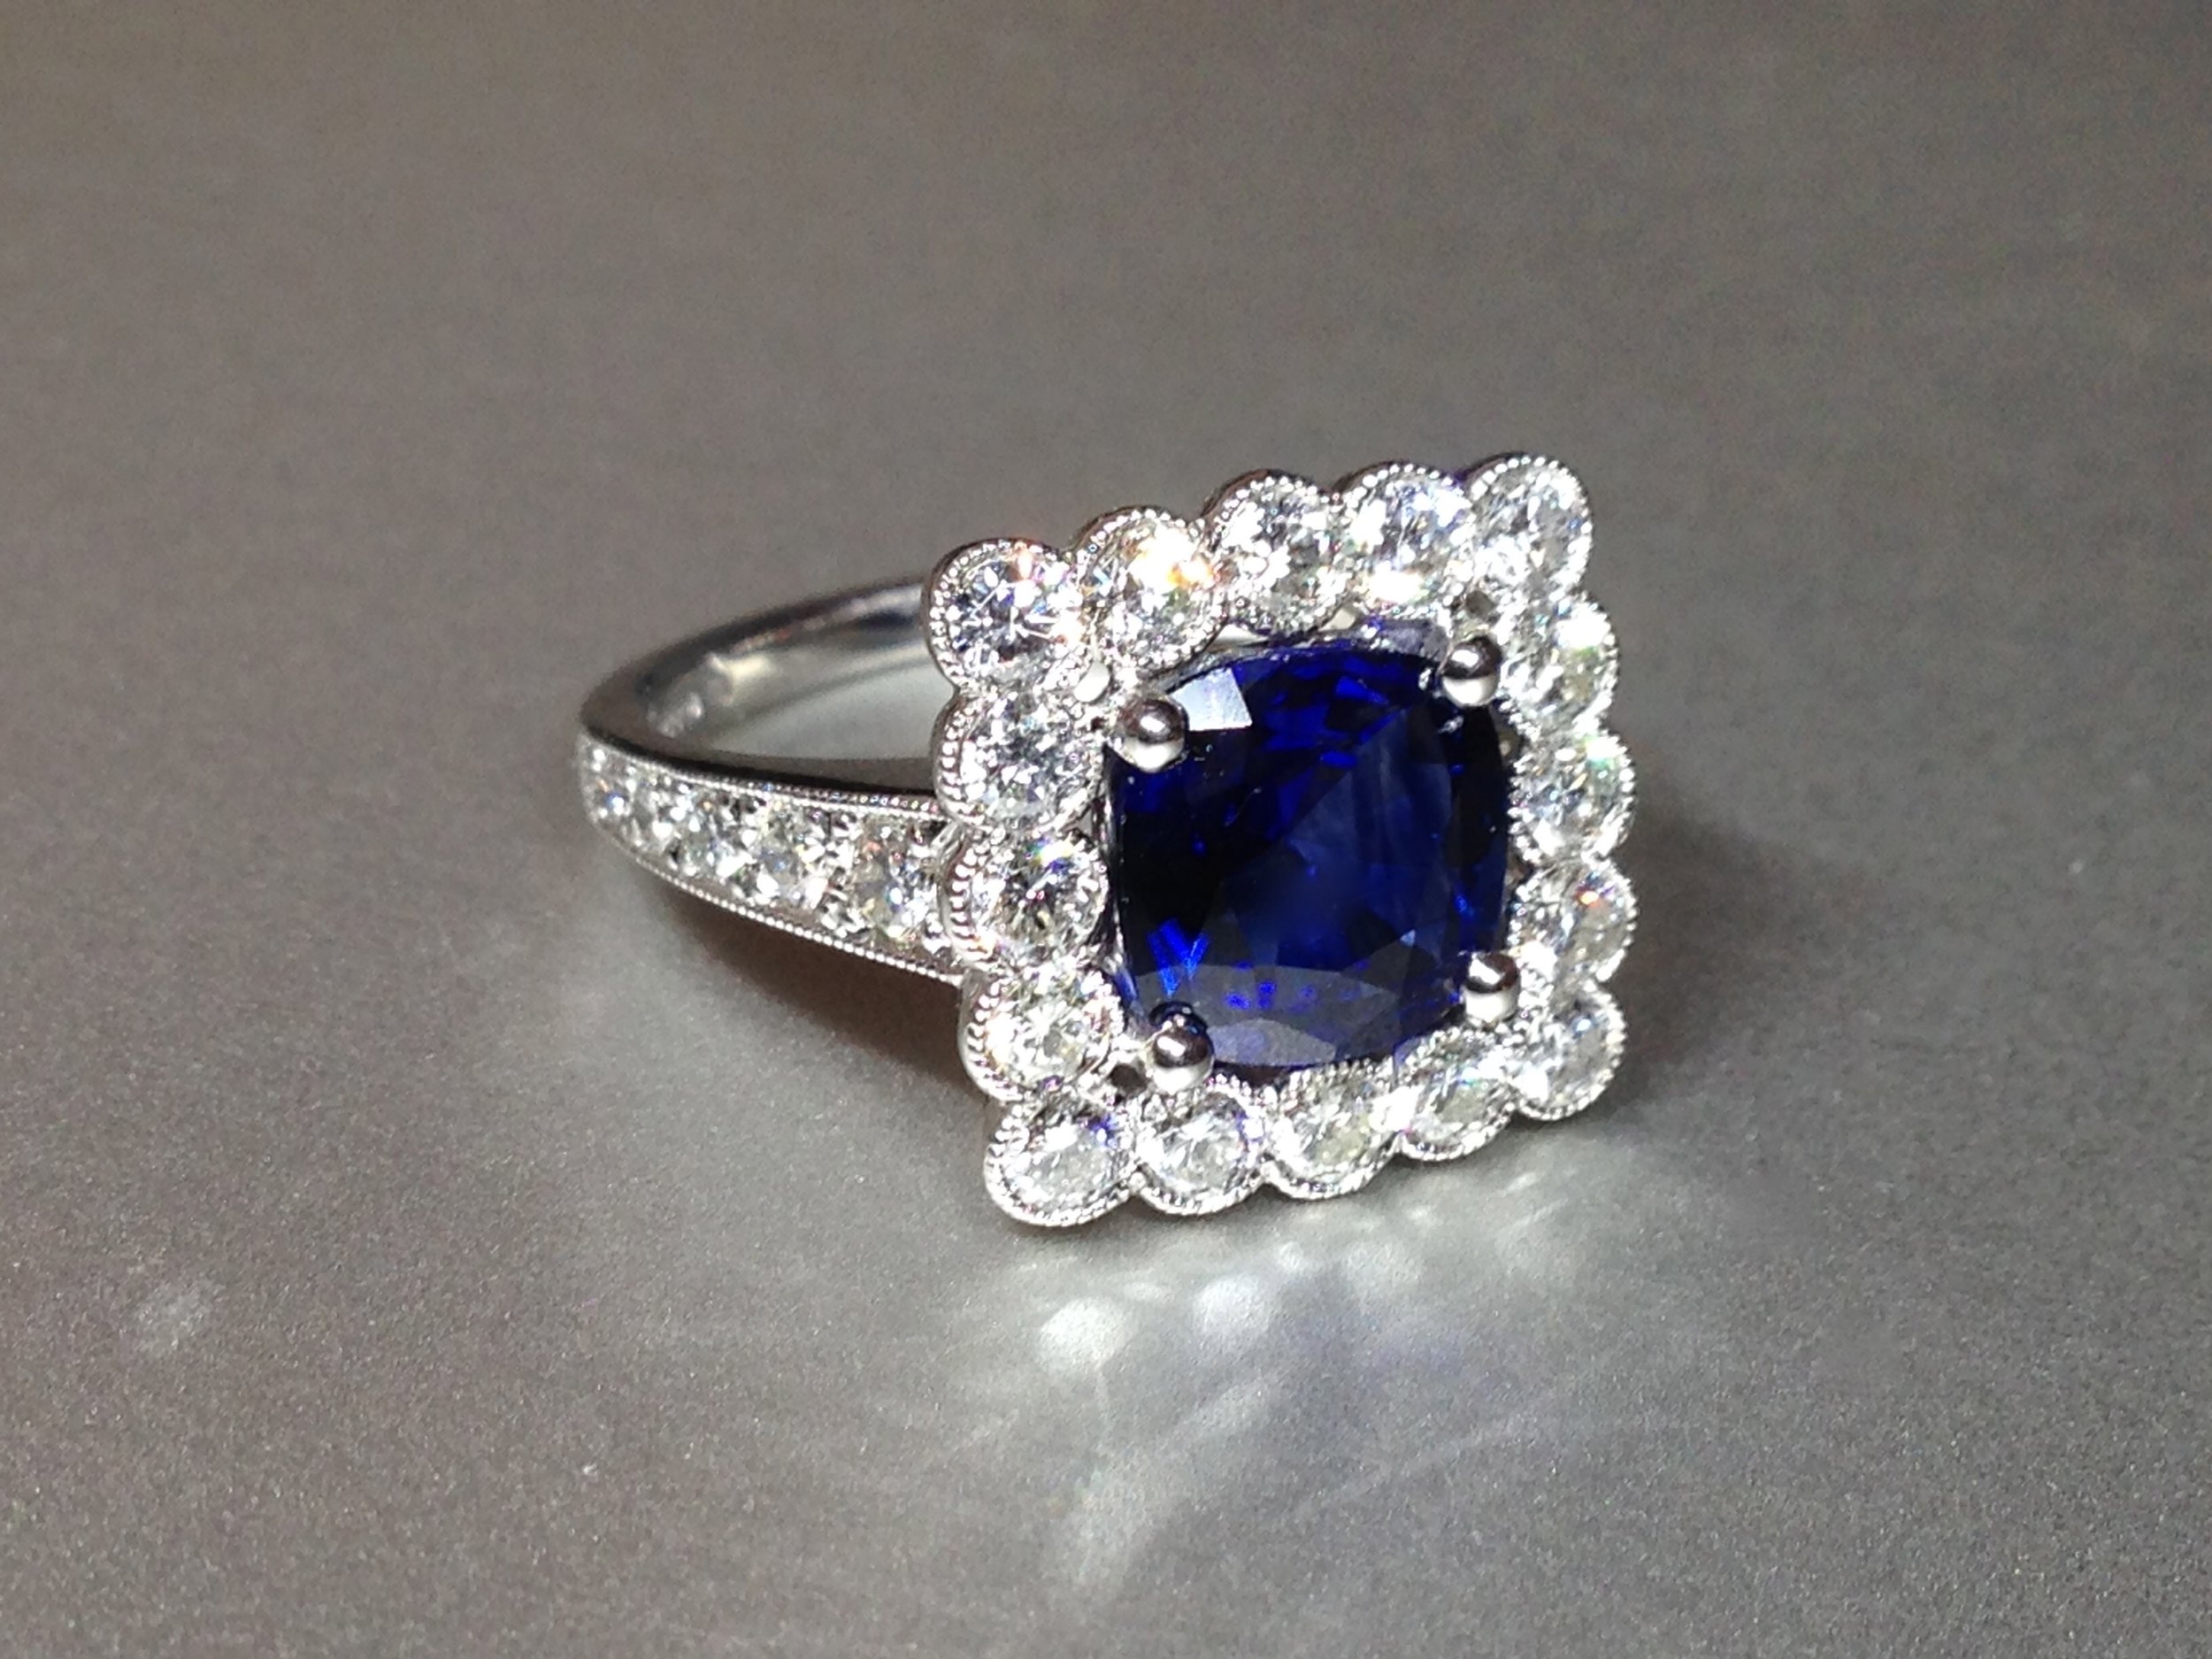 Copy of 2.08ct cushion cut sapphire in 1920's style daisy edge millegrain  cluster ring. Made in Chichester, England.